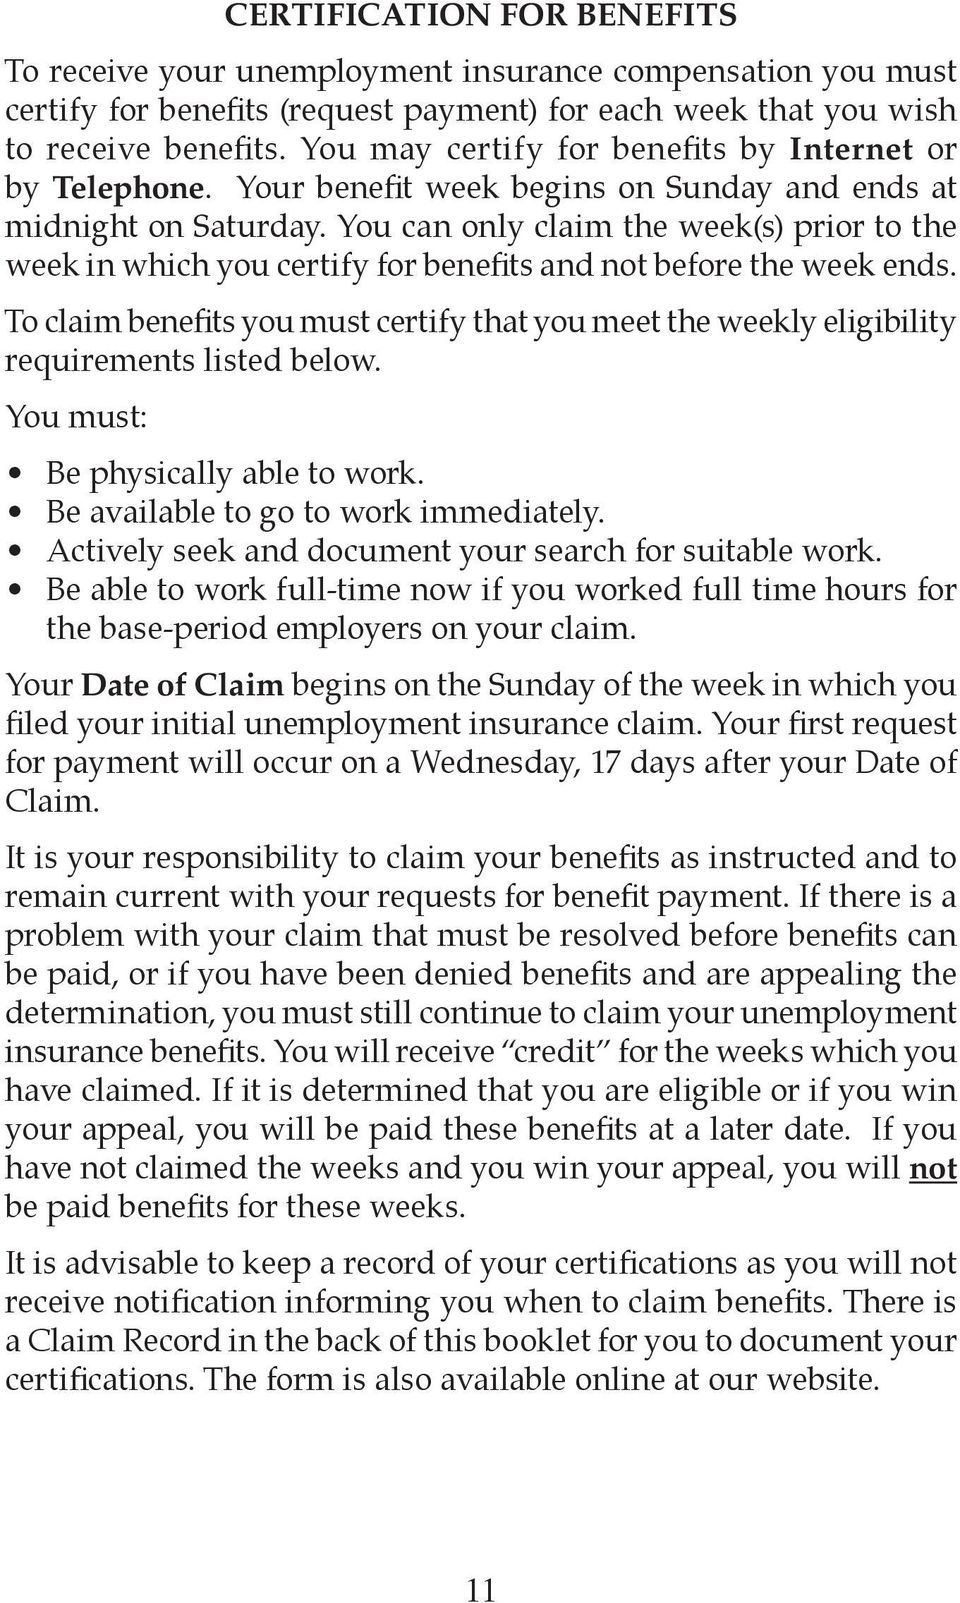 You can only claim the week(s) prior to the week in which you certify for benefits and not before the week ends.